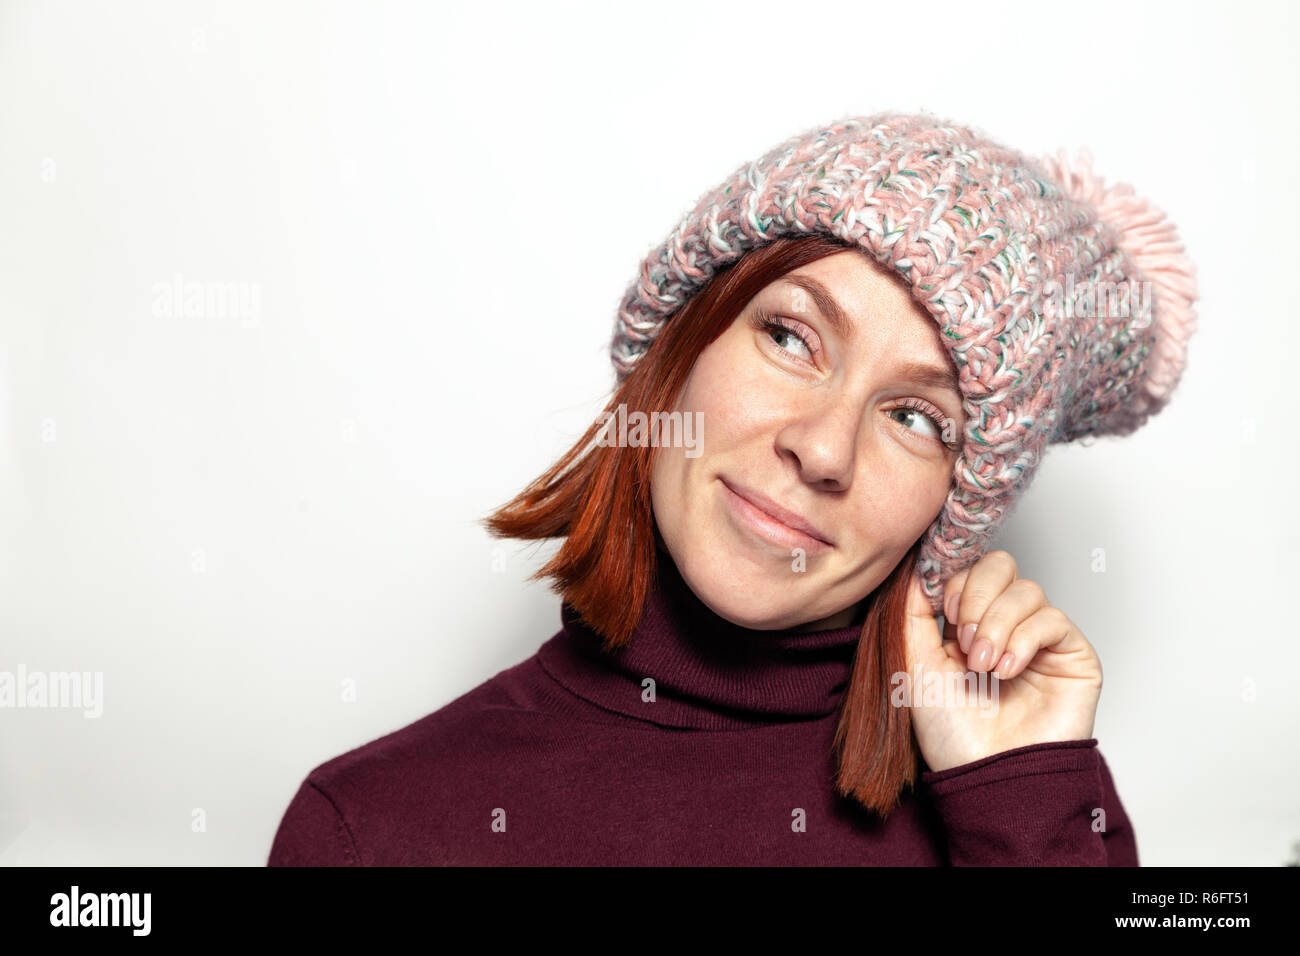 Isolated Portrait Of Beautiful Young Redhead Girl In Purple Sweater And Pink Knitted Hat With Pompon Dressed Sideways Smiling On White Background In S